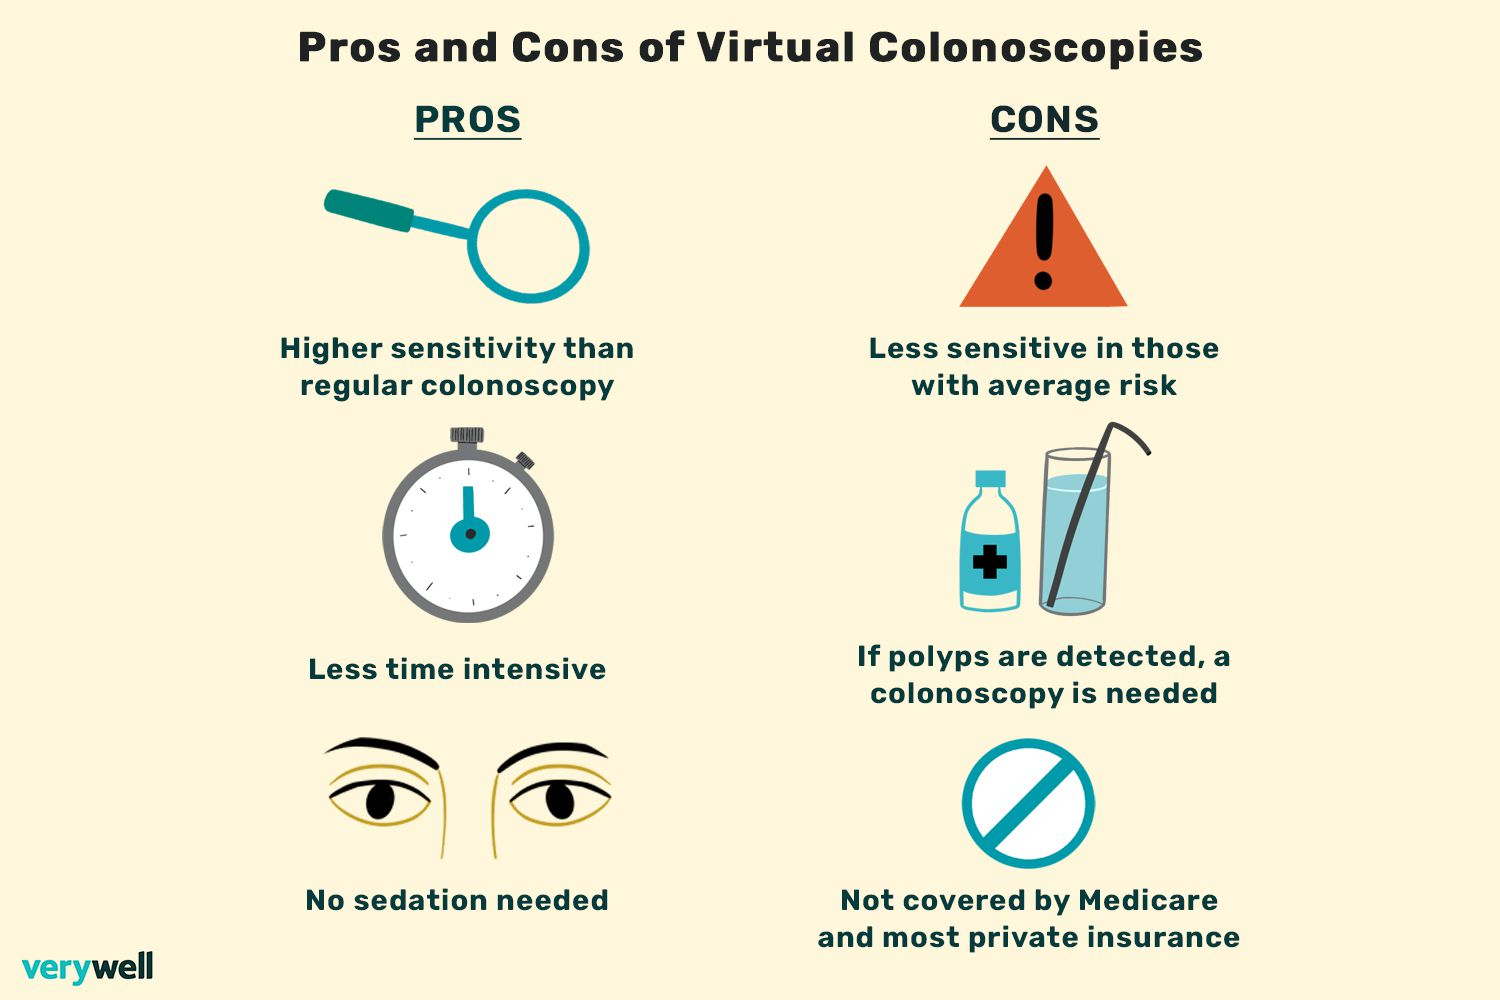 Pros and Cons of Virtual Colonoscopies